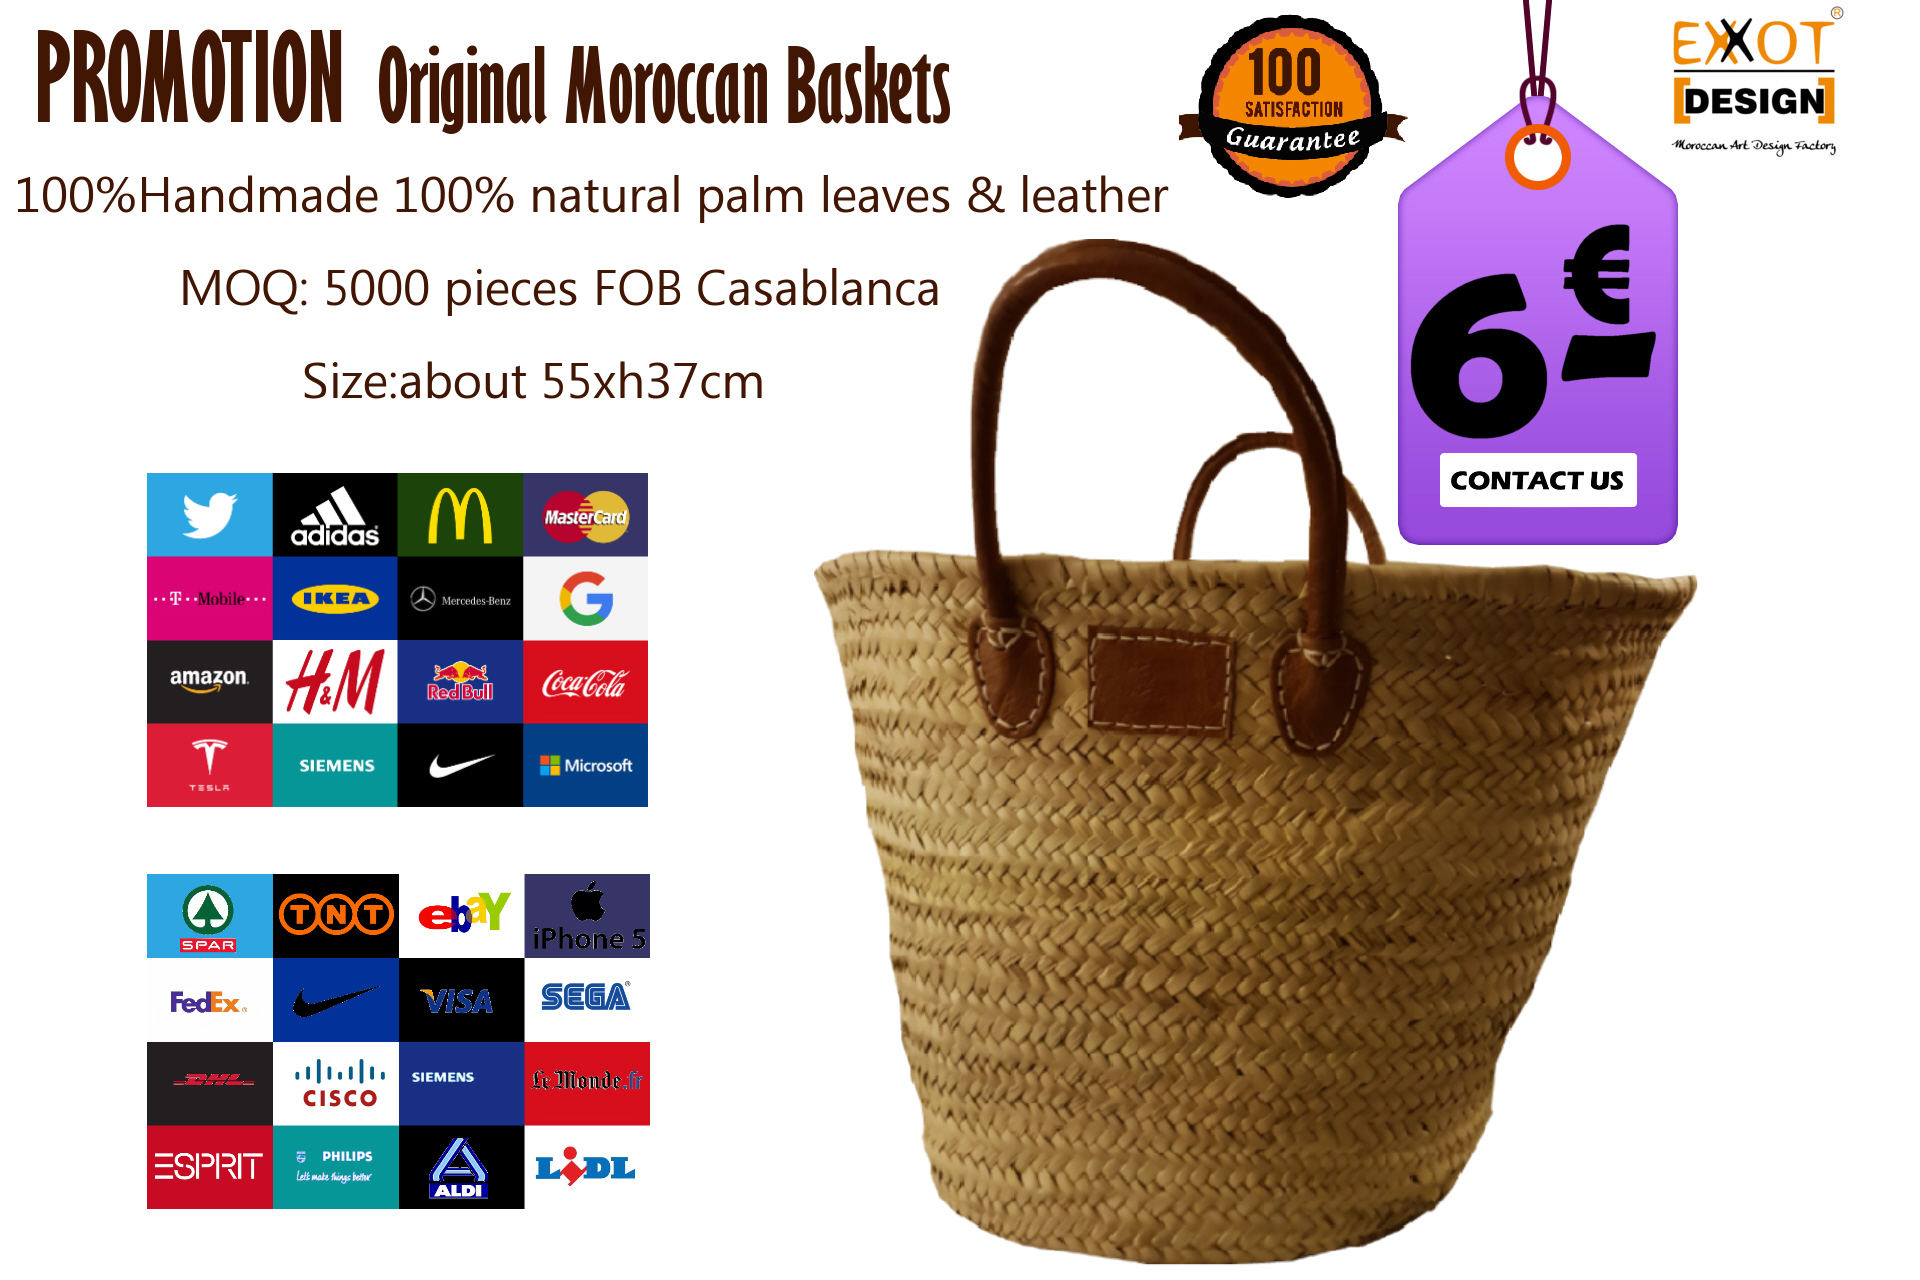 baskets, moroccan baskets,werbeartikel,promotion,logo